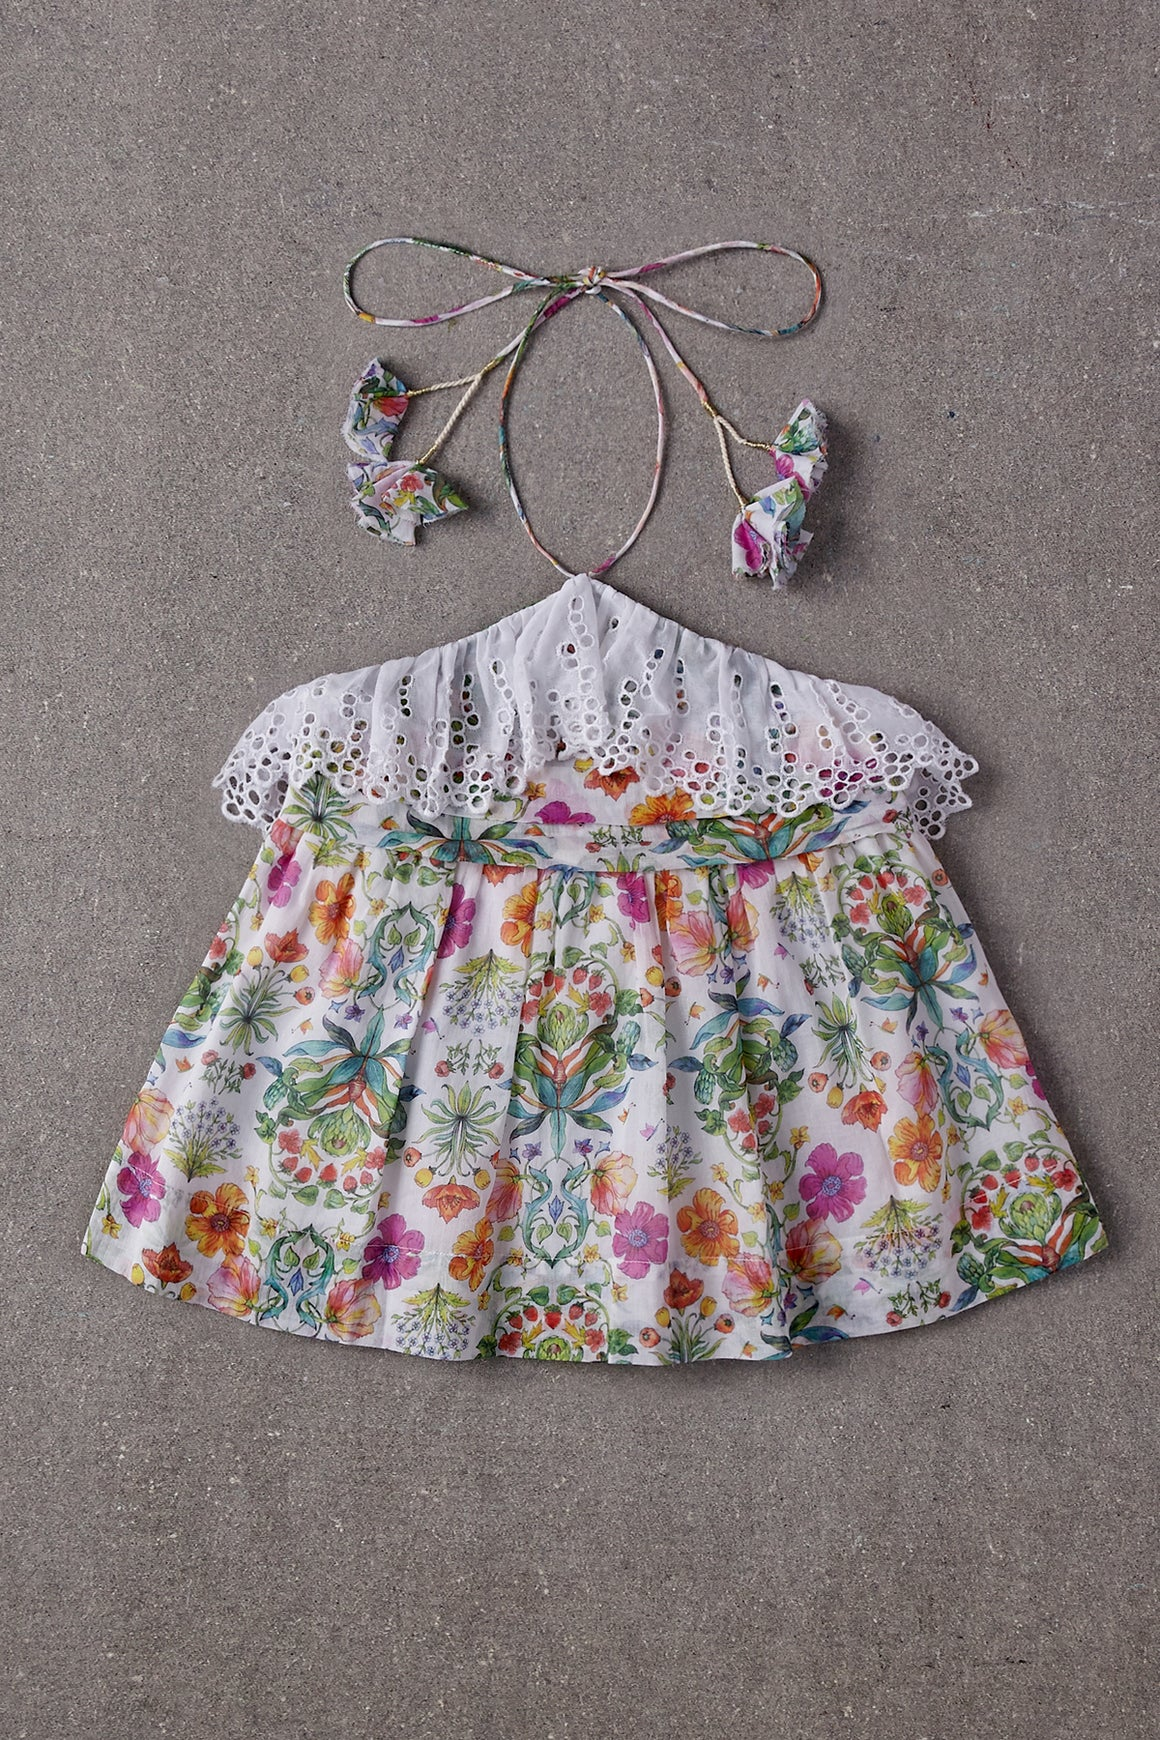 Nellystella Candy Blouse - Summer Floral